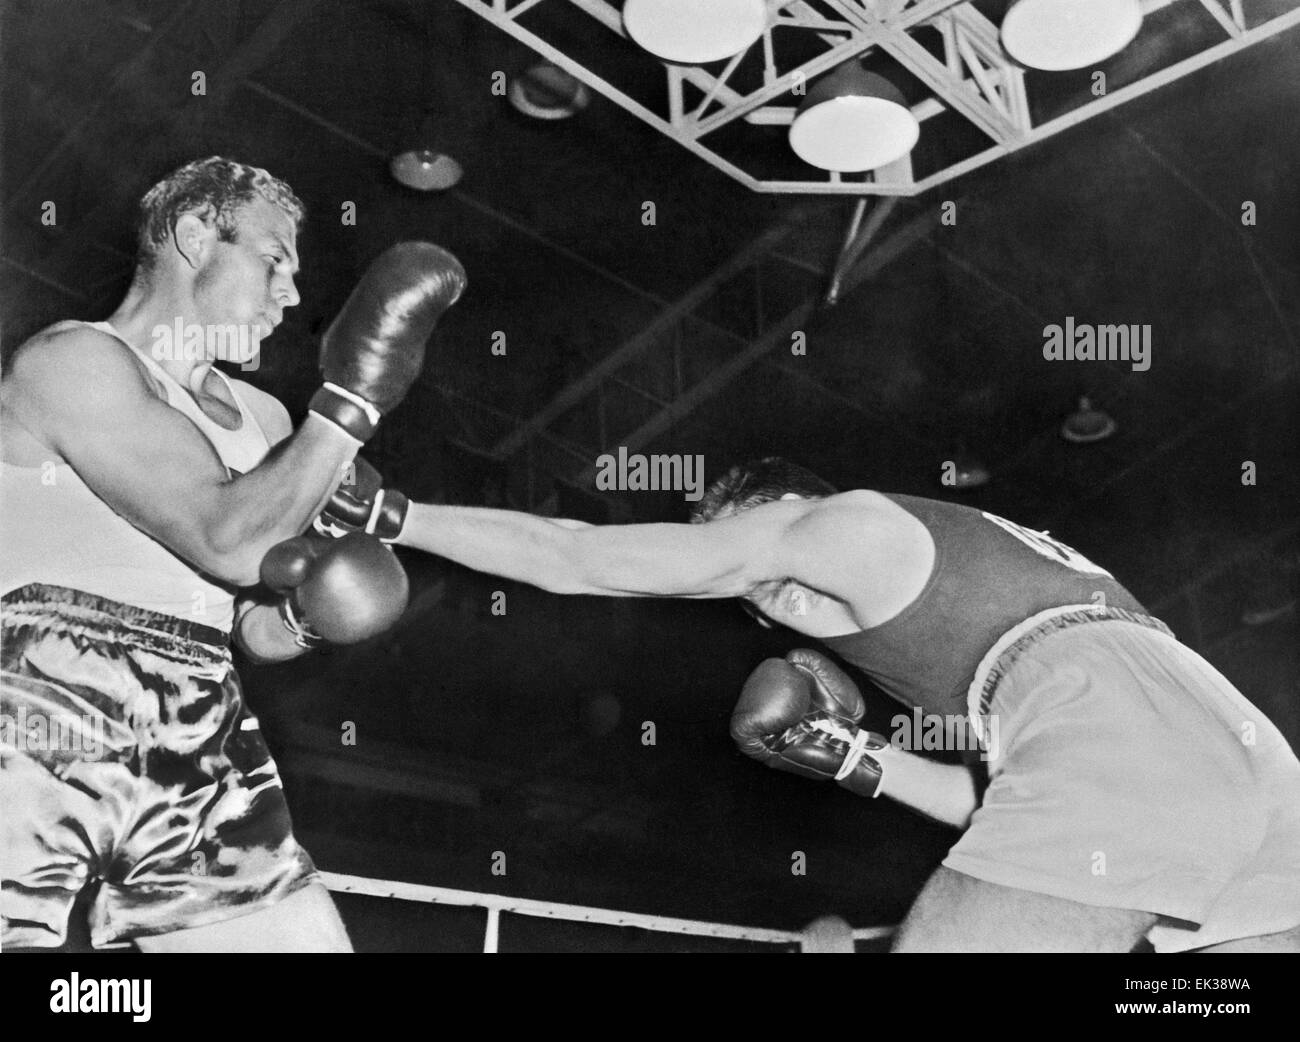 MELBOURNE, AUSTRALIA. The 1956 Summer Olympics. Soviet boxer Lev Mukhin (R) and Swedish Thorner Ahsman. - Stock Image